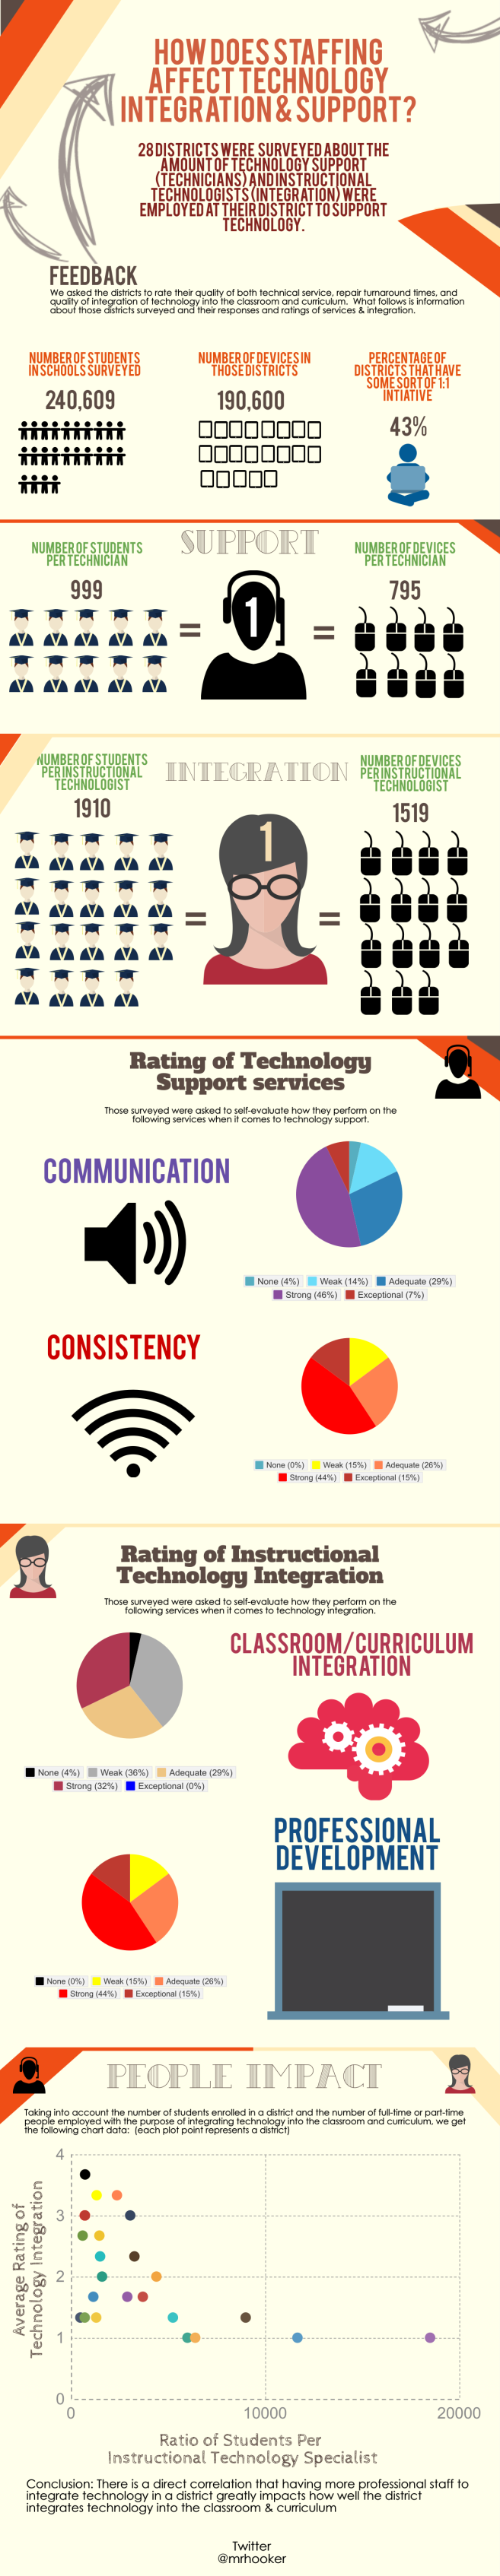 K-12 Tech Staffing Infographic (1)